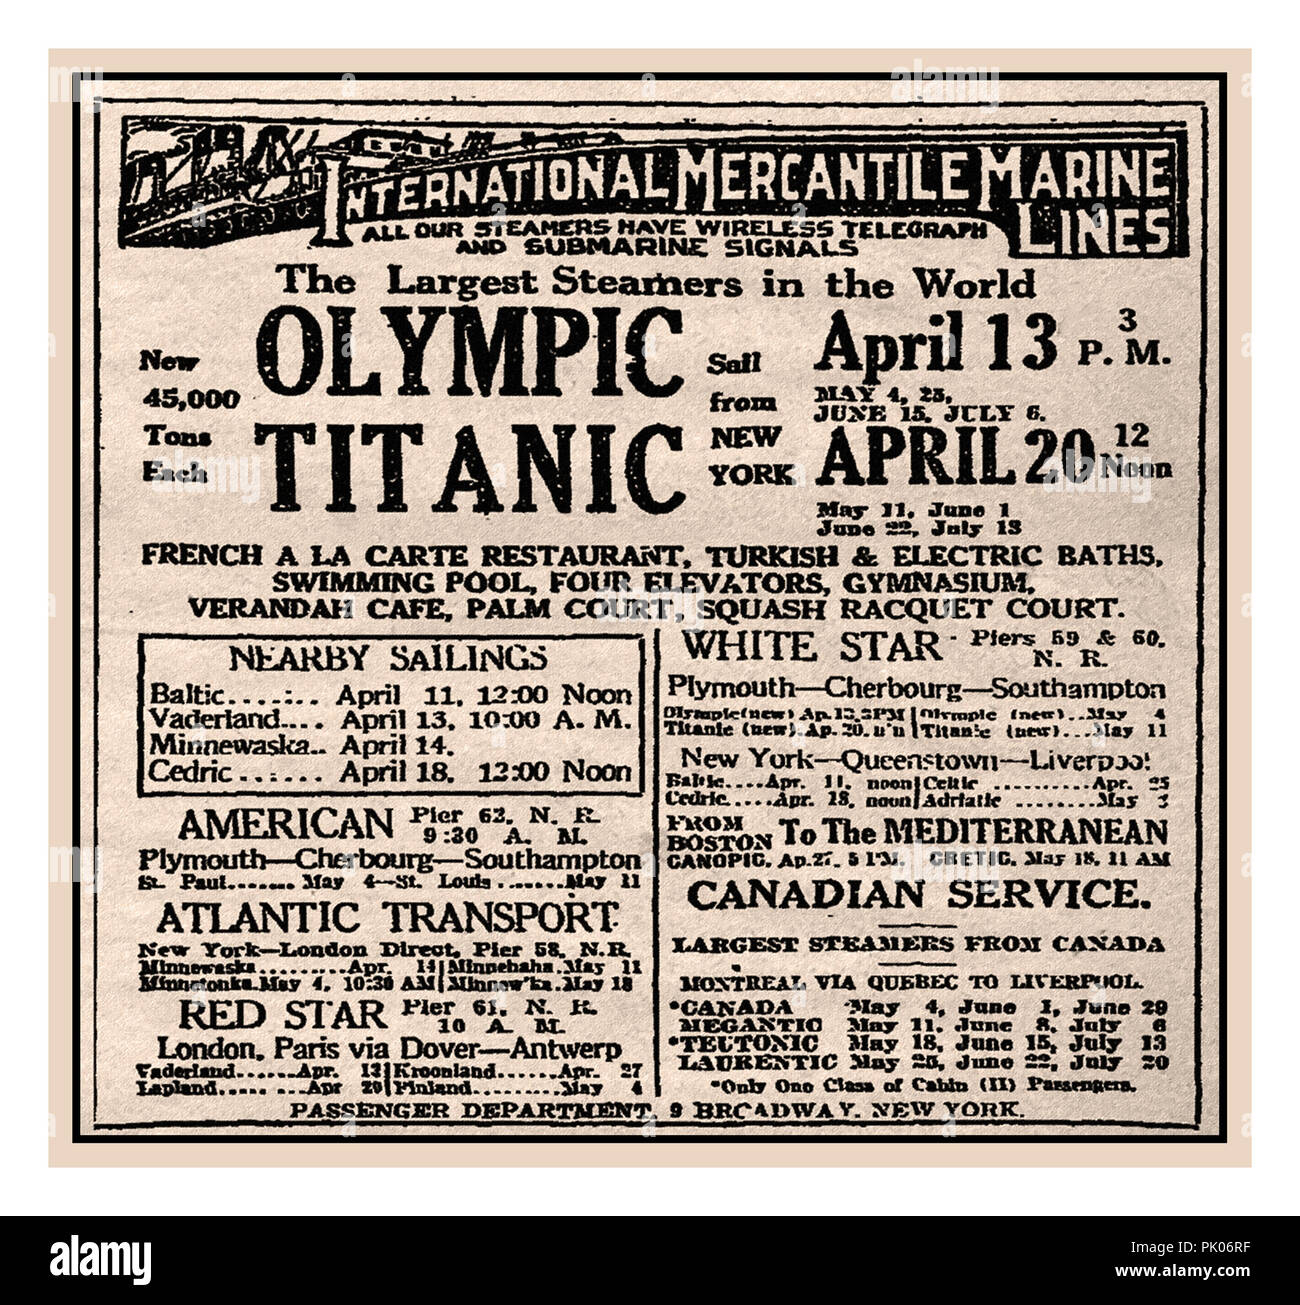 RMS TITANIC newspaper advertisement in New York Times for the first maiden voyage eastbound transatlantic sailing of Titanic from New York to Europe departing noon April 20th 1912. This scheduled sailing sadly did not take place. Titanic was tragically lost on April 15th 1912 Stock Photo